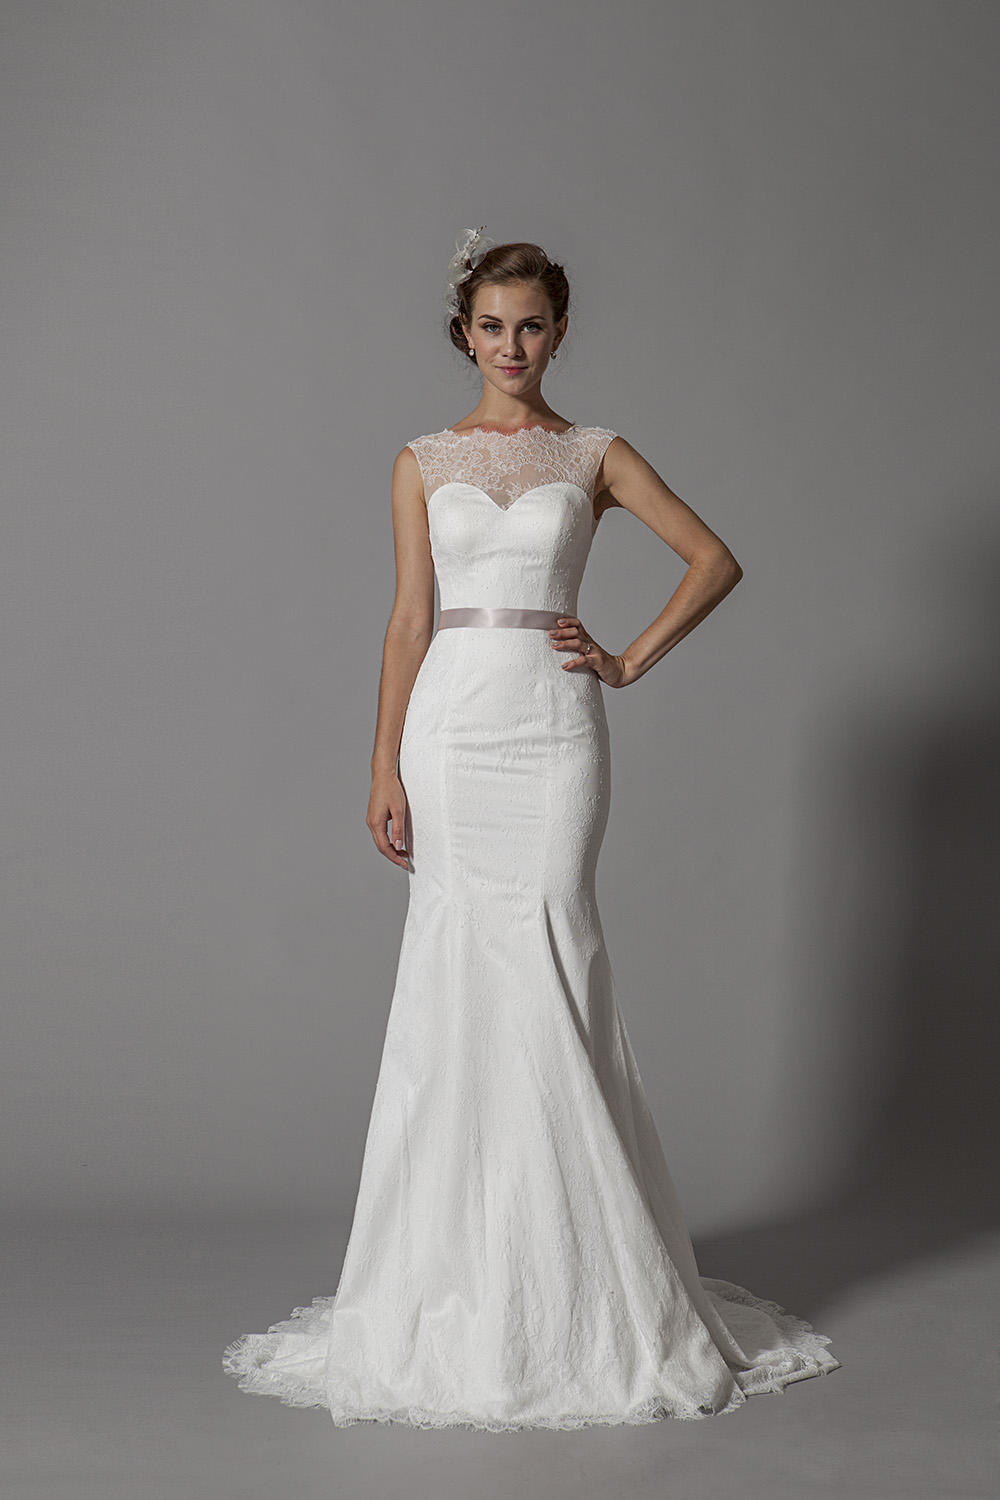 Emesta wedding dress wedding dresses scotland by for Wedding dresses made in uk